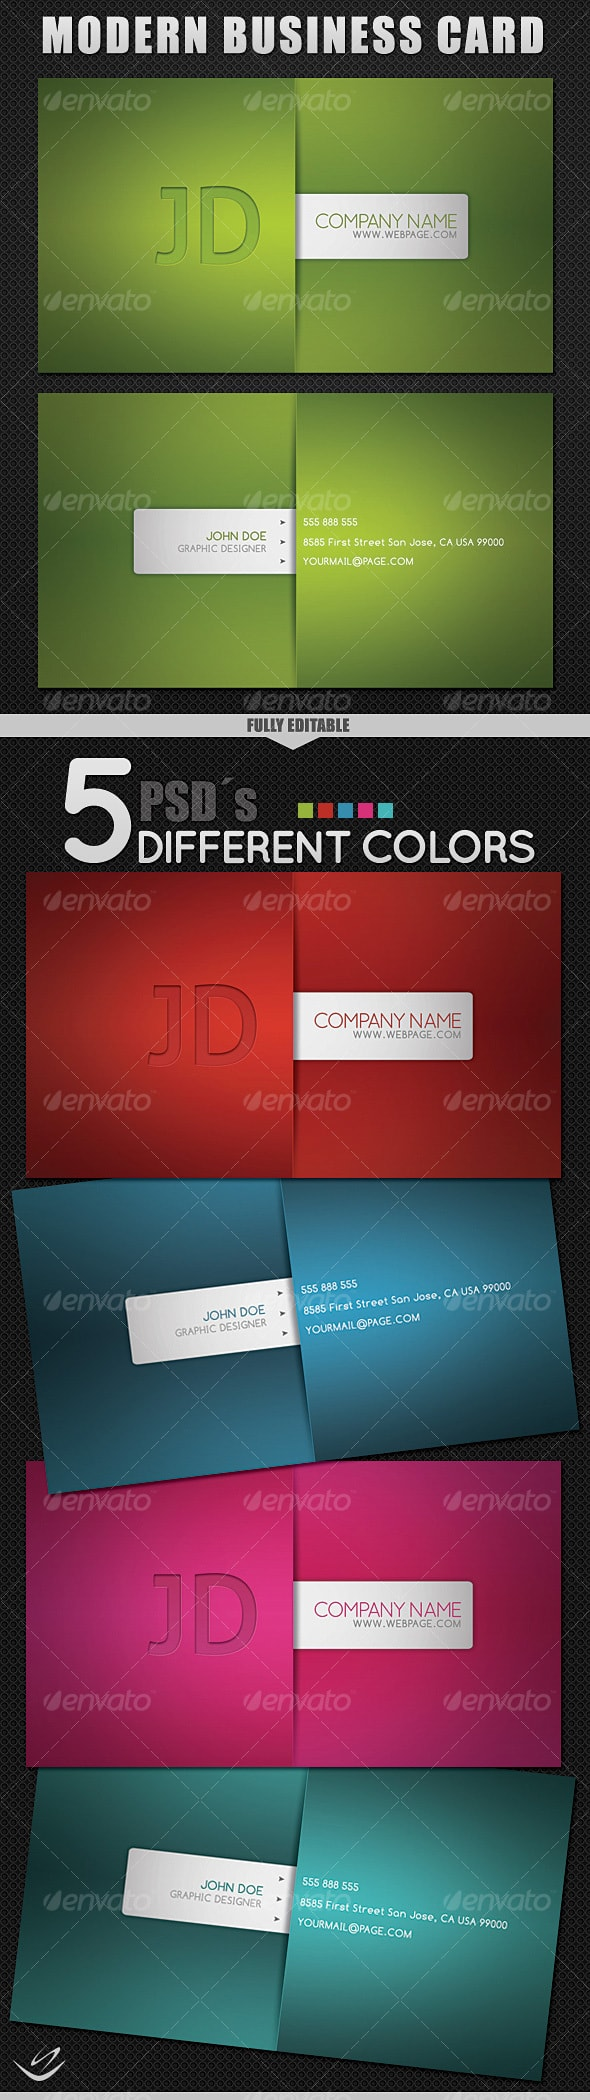 Modern Style Business Card Template